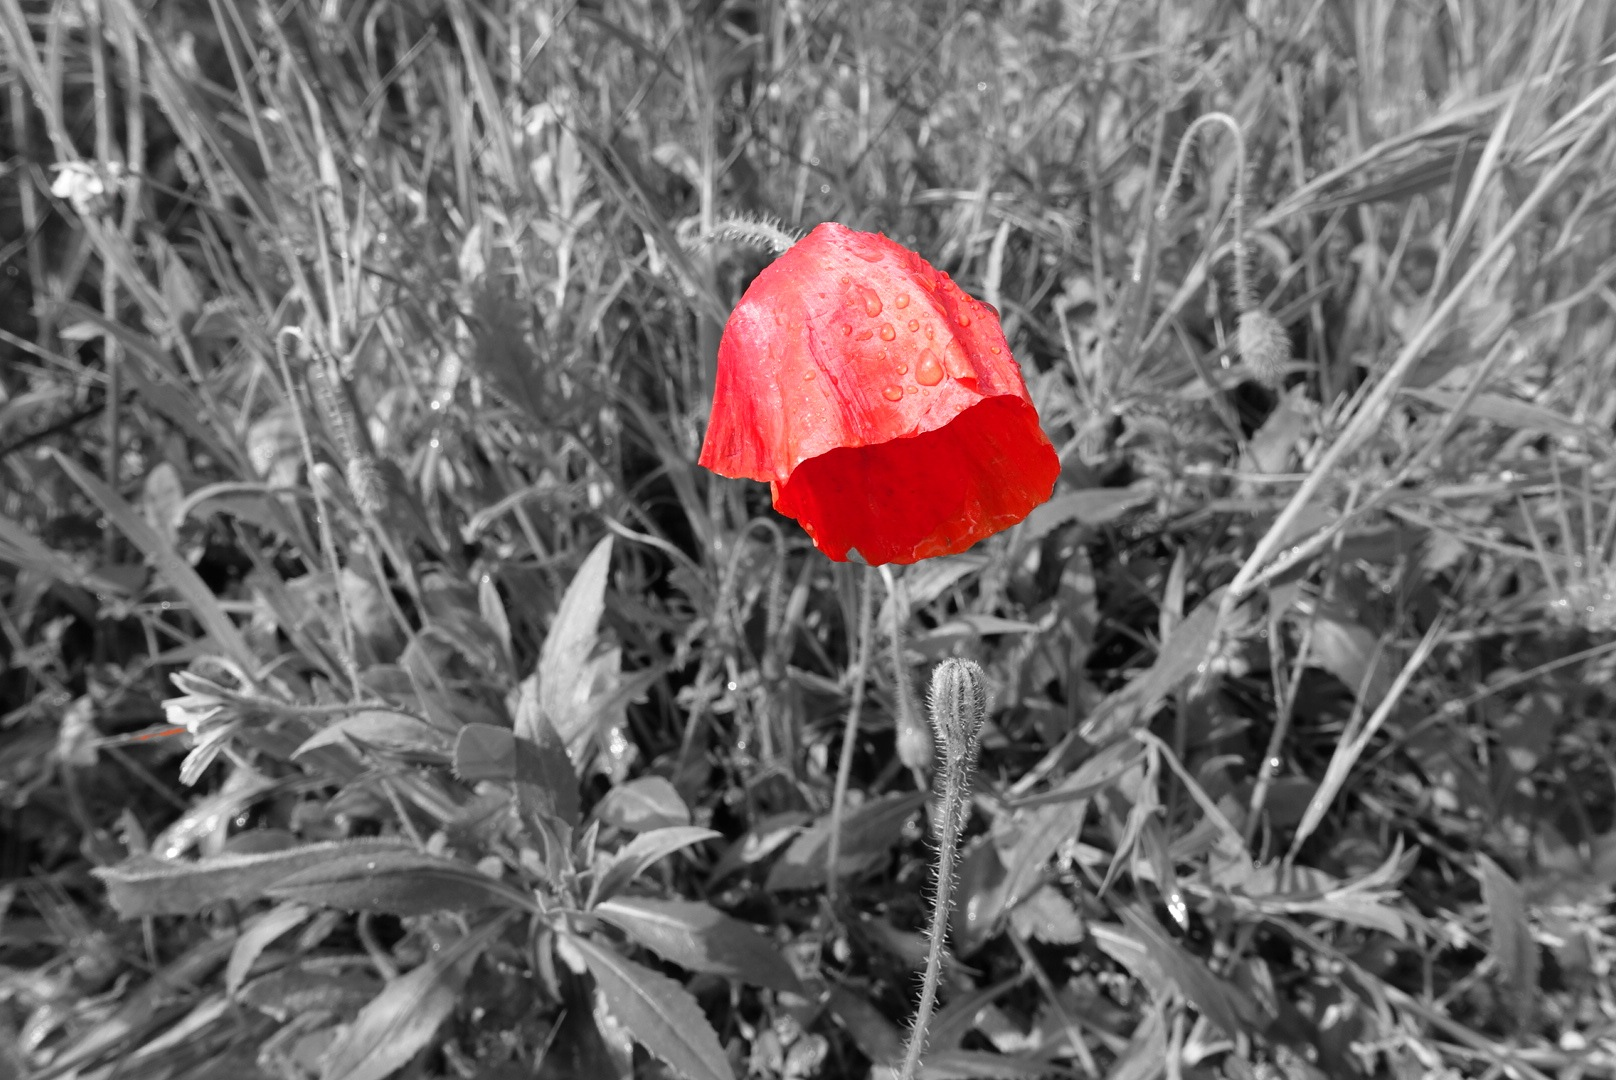 Lest we Forget the Conscripts who didn't want to go and died alone. by Simon Ciappara